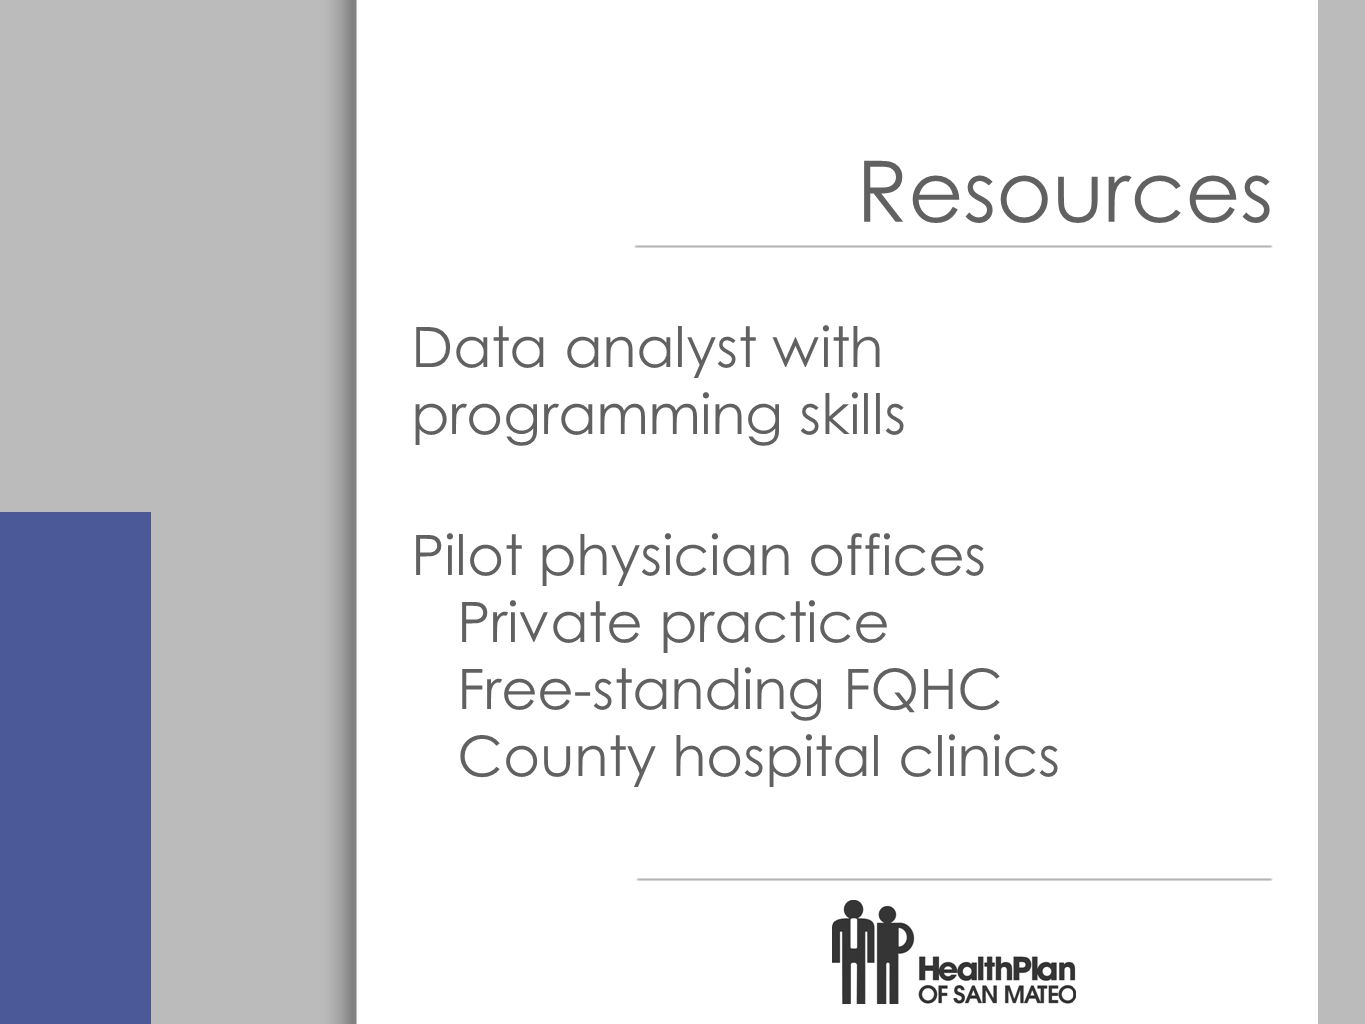 Resources Data analyst with programming skills Pilot physician offices Private practice Free-standing FQHC County hospital clinics